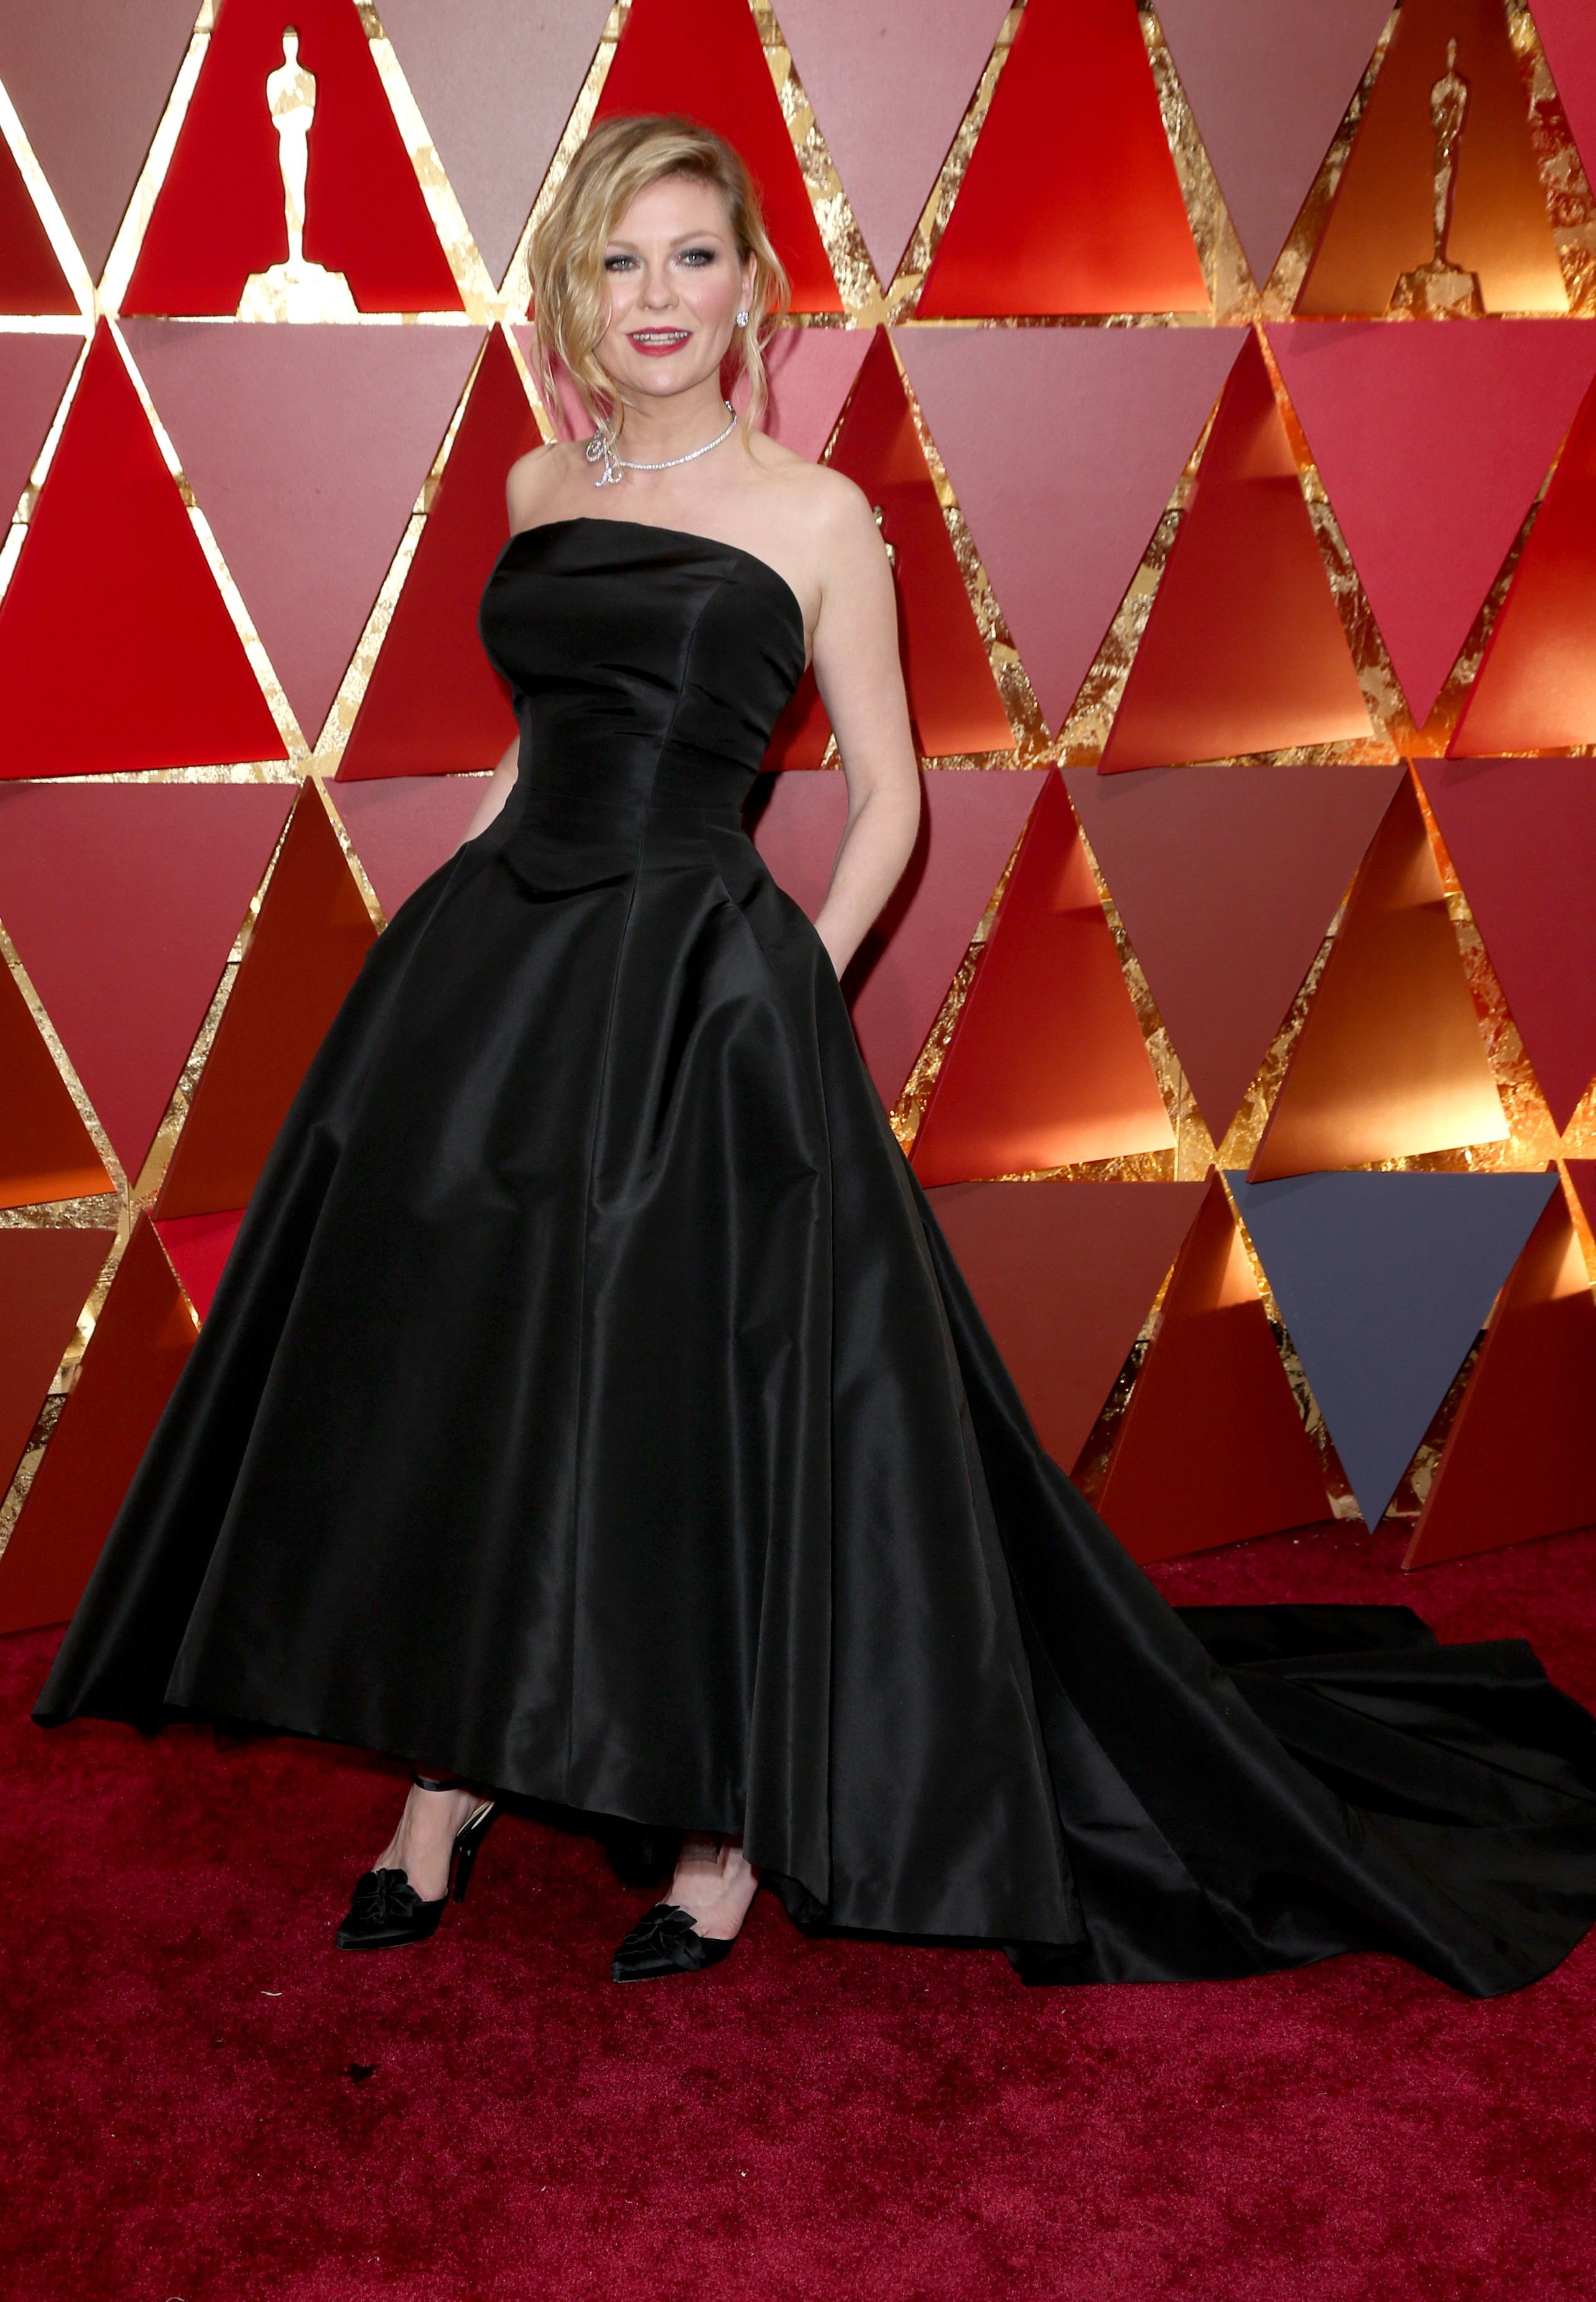 Mandatory Credit: Photo by Jim Smeal/BEI/Shutterstock (8434881wg) Kirsten Dunst 89th Annual Academy Awards, Arrivals, Los Angeles, USA - 26 Feb 2017